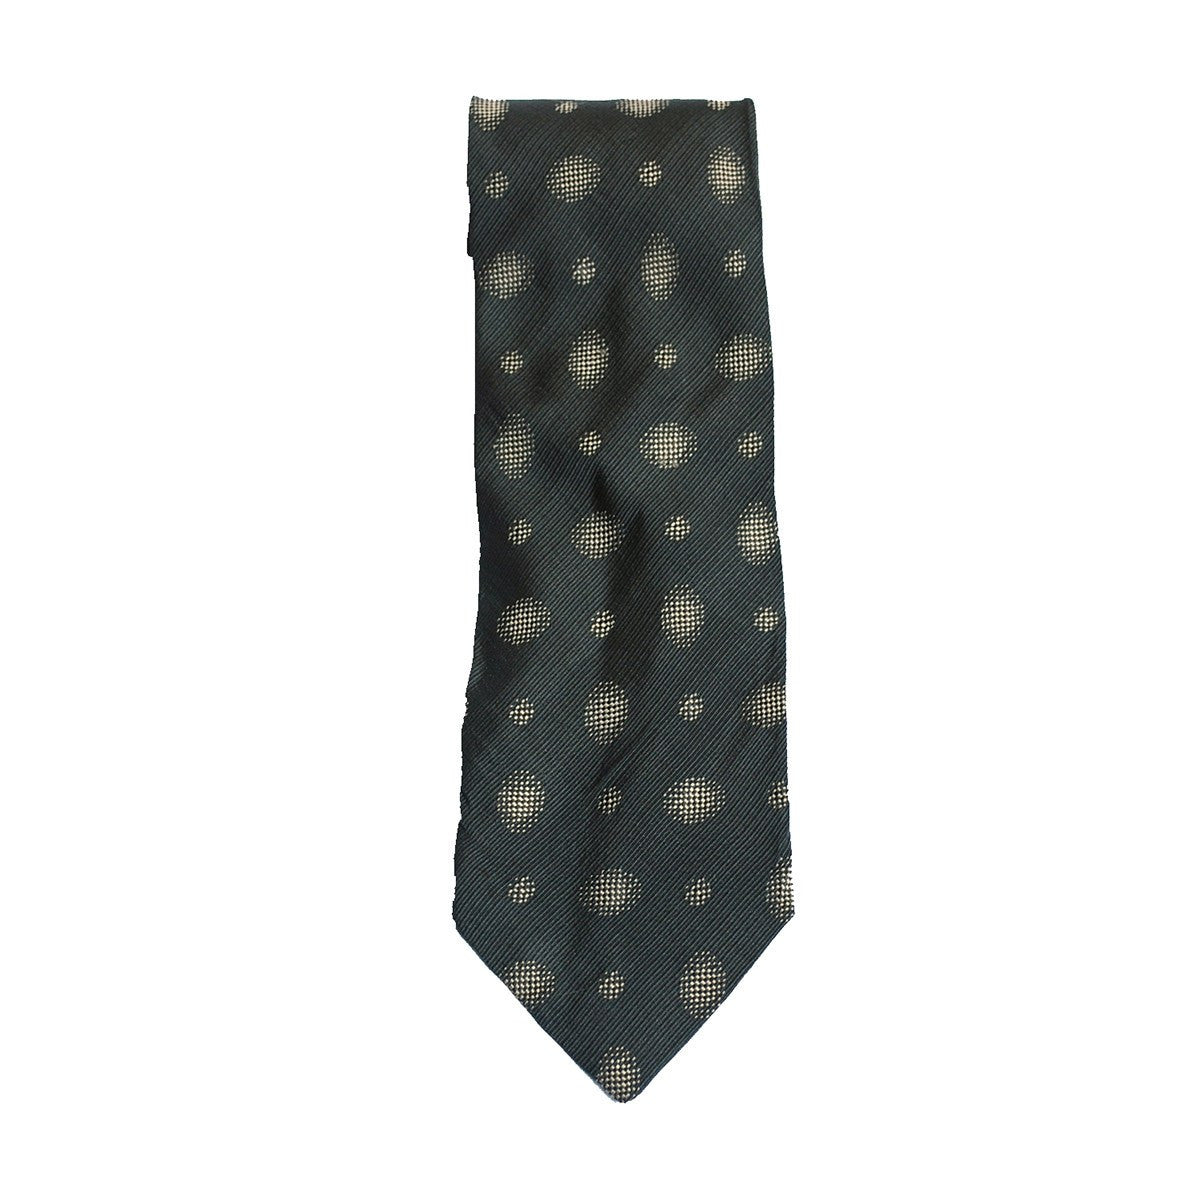 1980s Armani Men's Tie, Abstract Circle Pattern